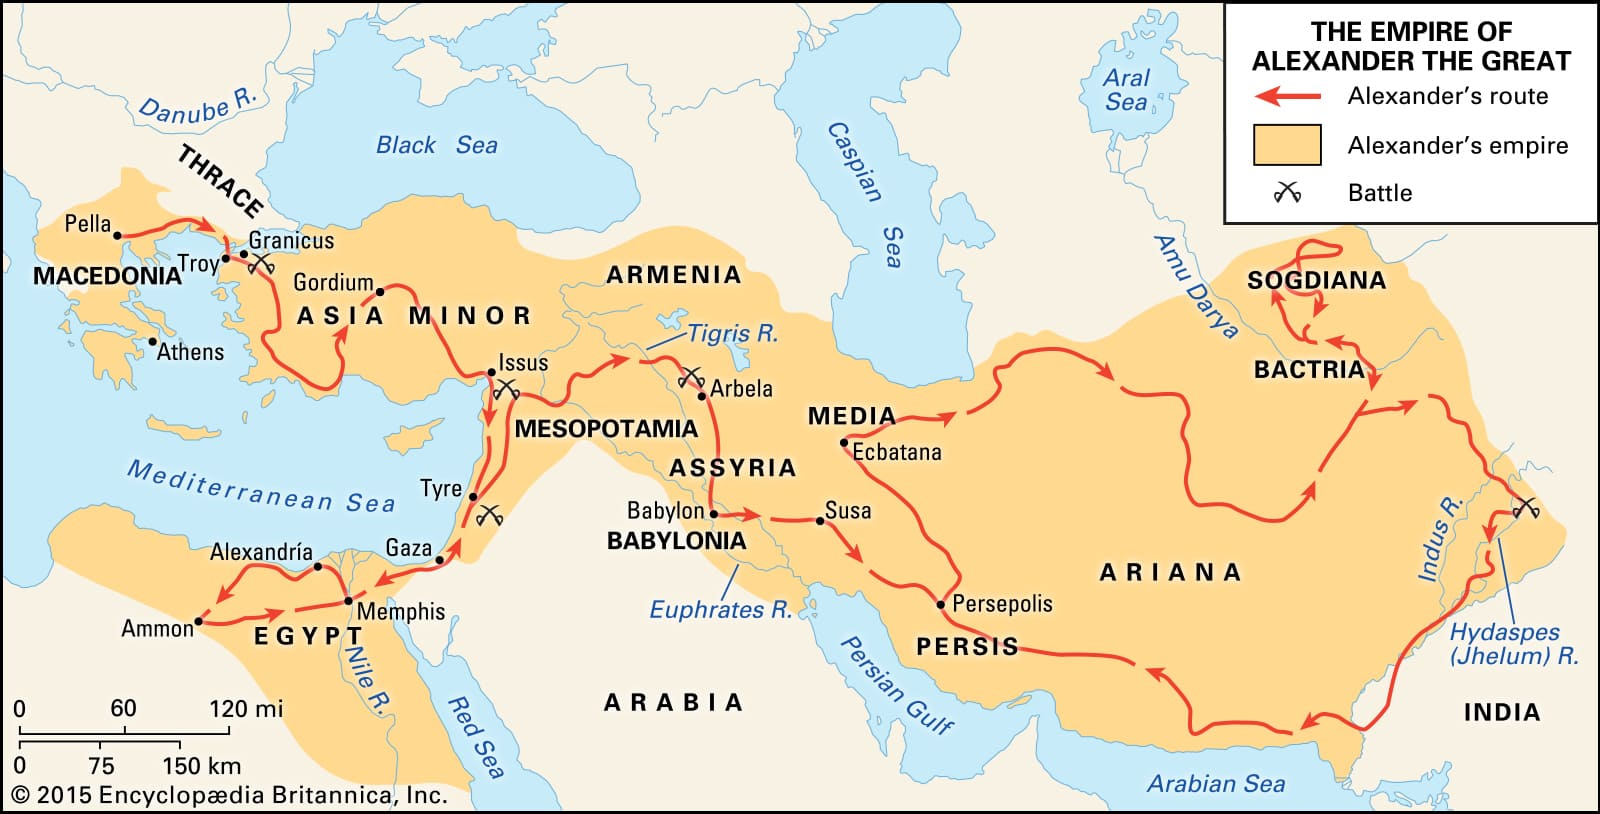 Map of the battles of Alexander the Great